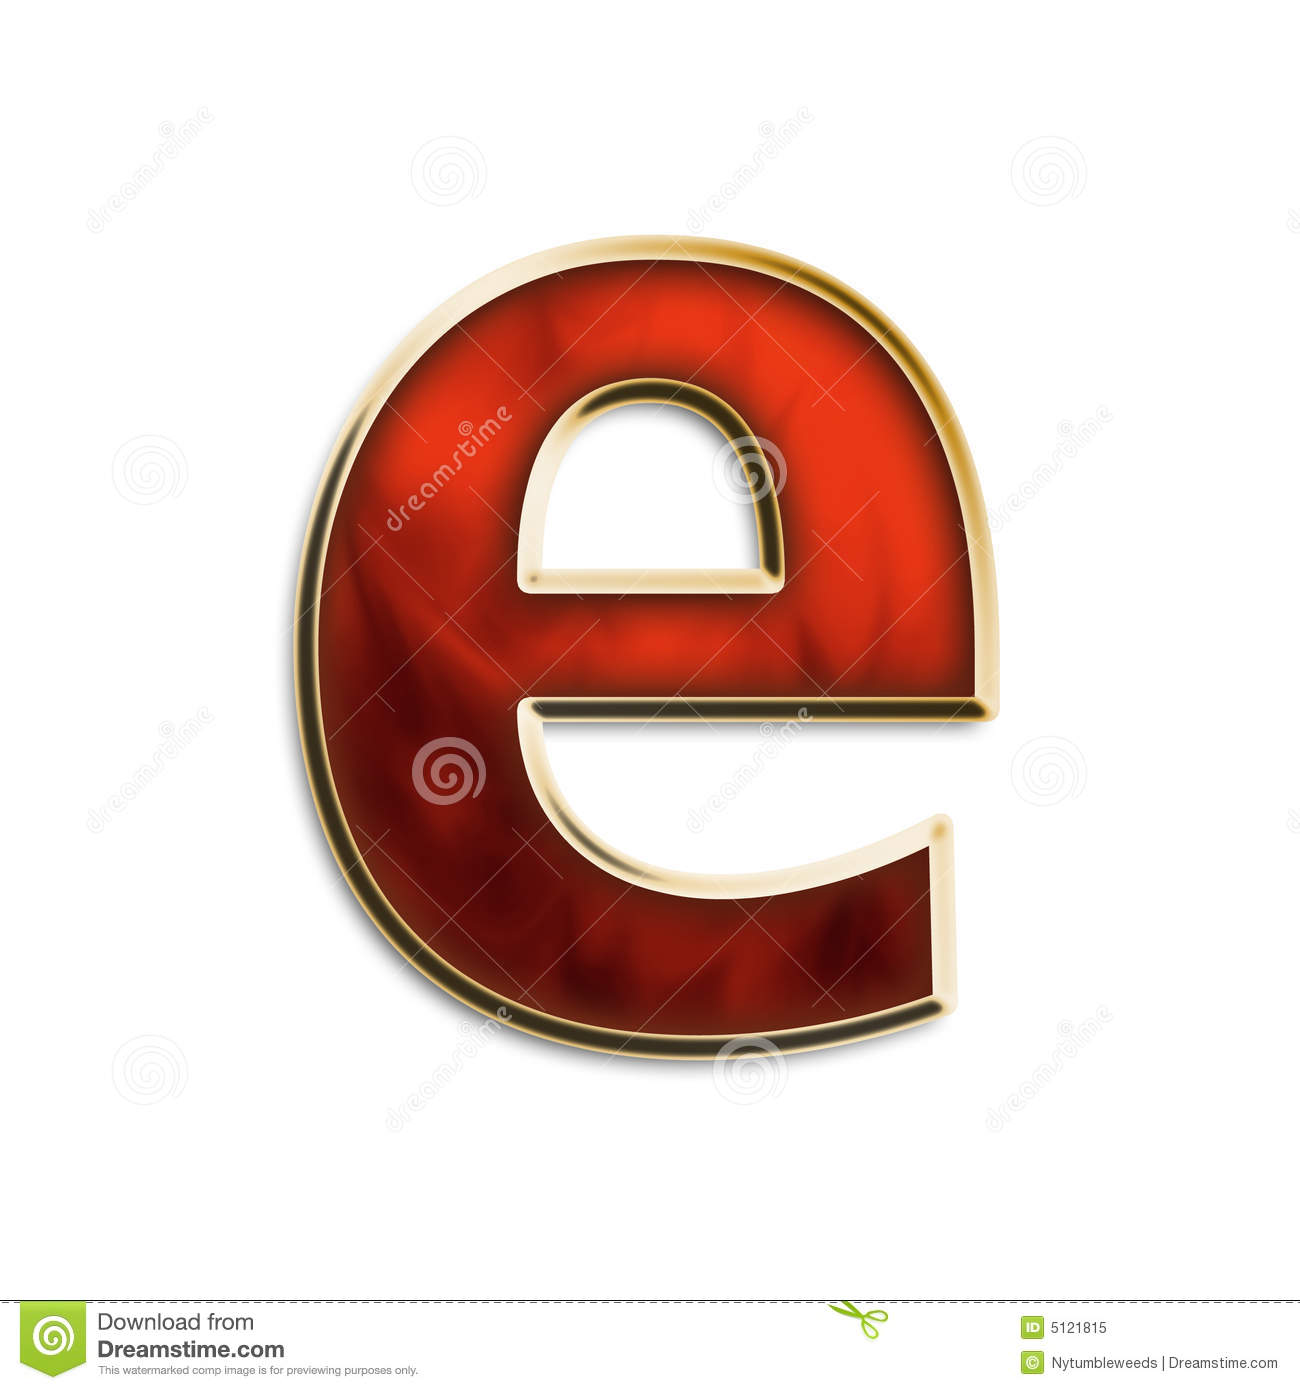 Lowercase e clipart with no background svg transparent library Fiery Lowercase E Royalty Free Stock Photo - Image: 5121815 svg transparent library